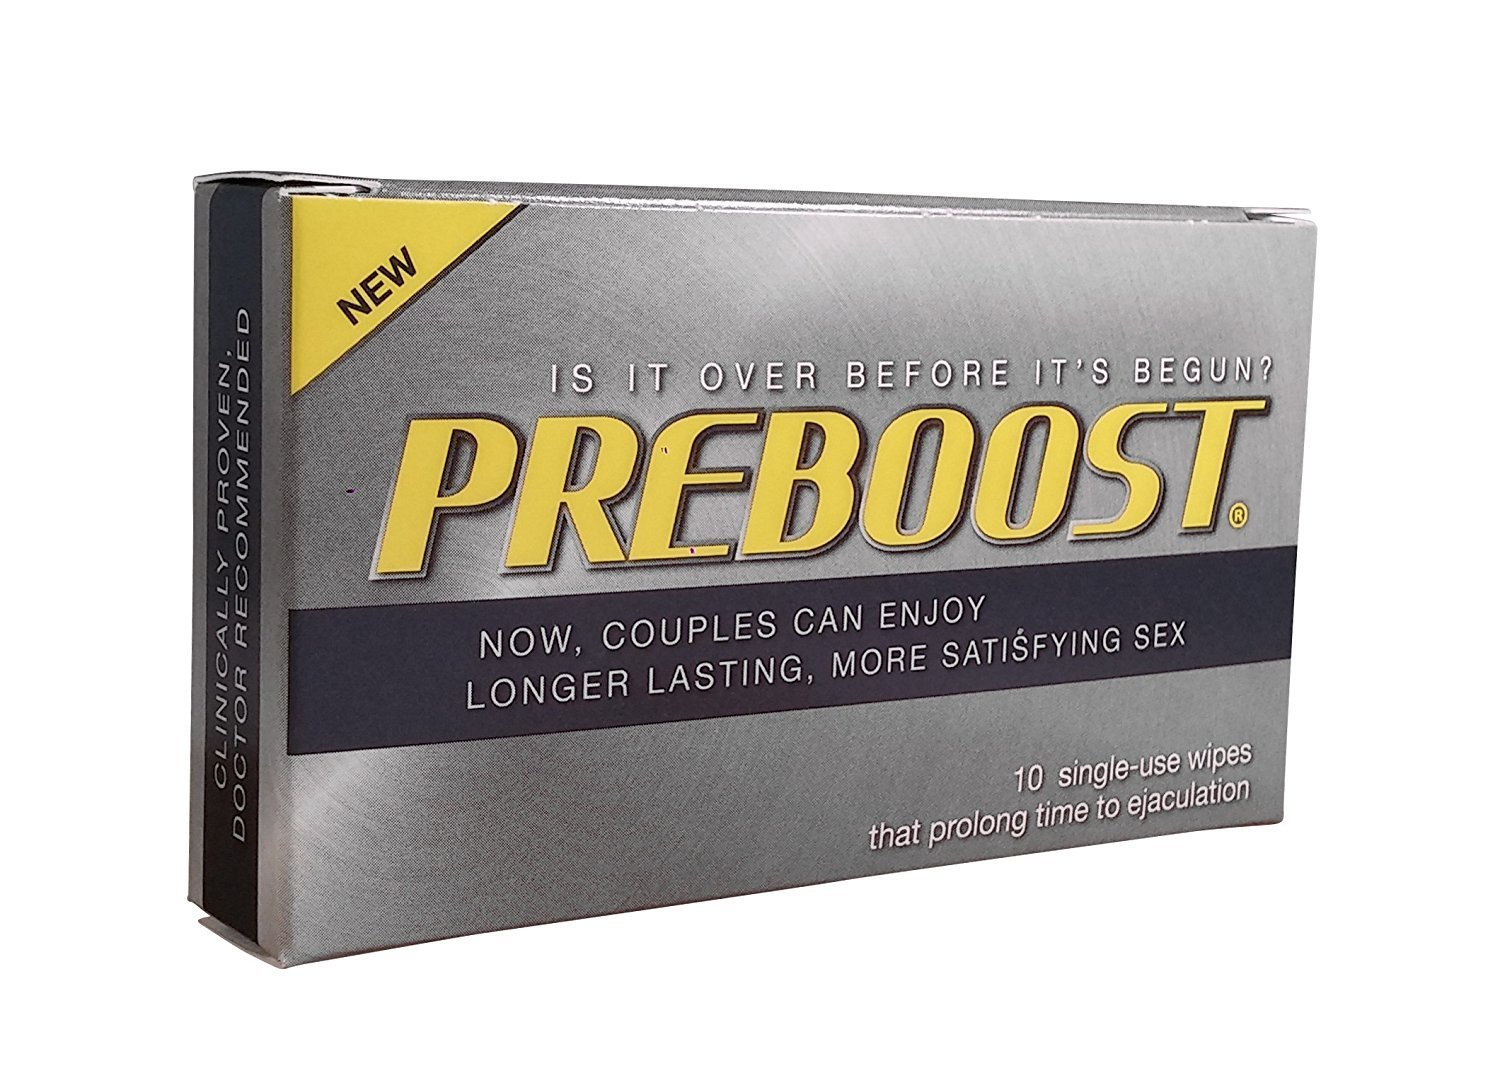 PREBOOST 10 single-use wipes 21180